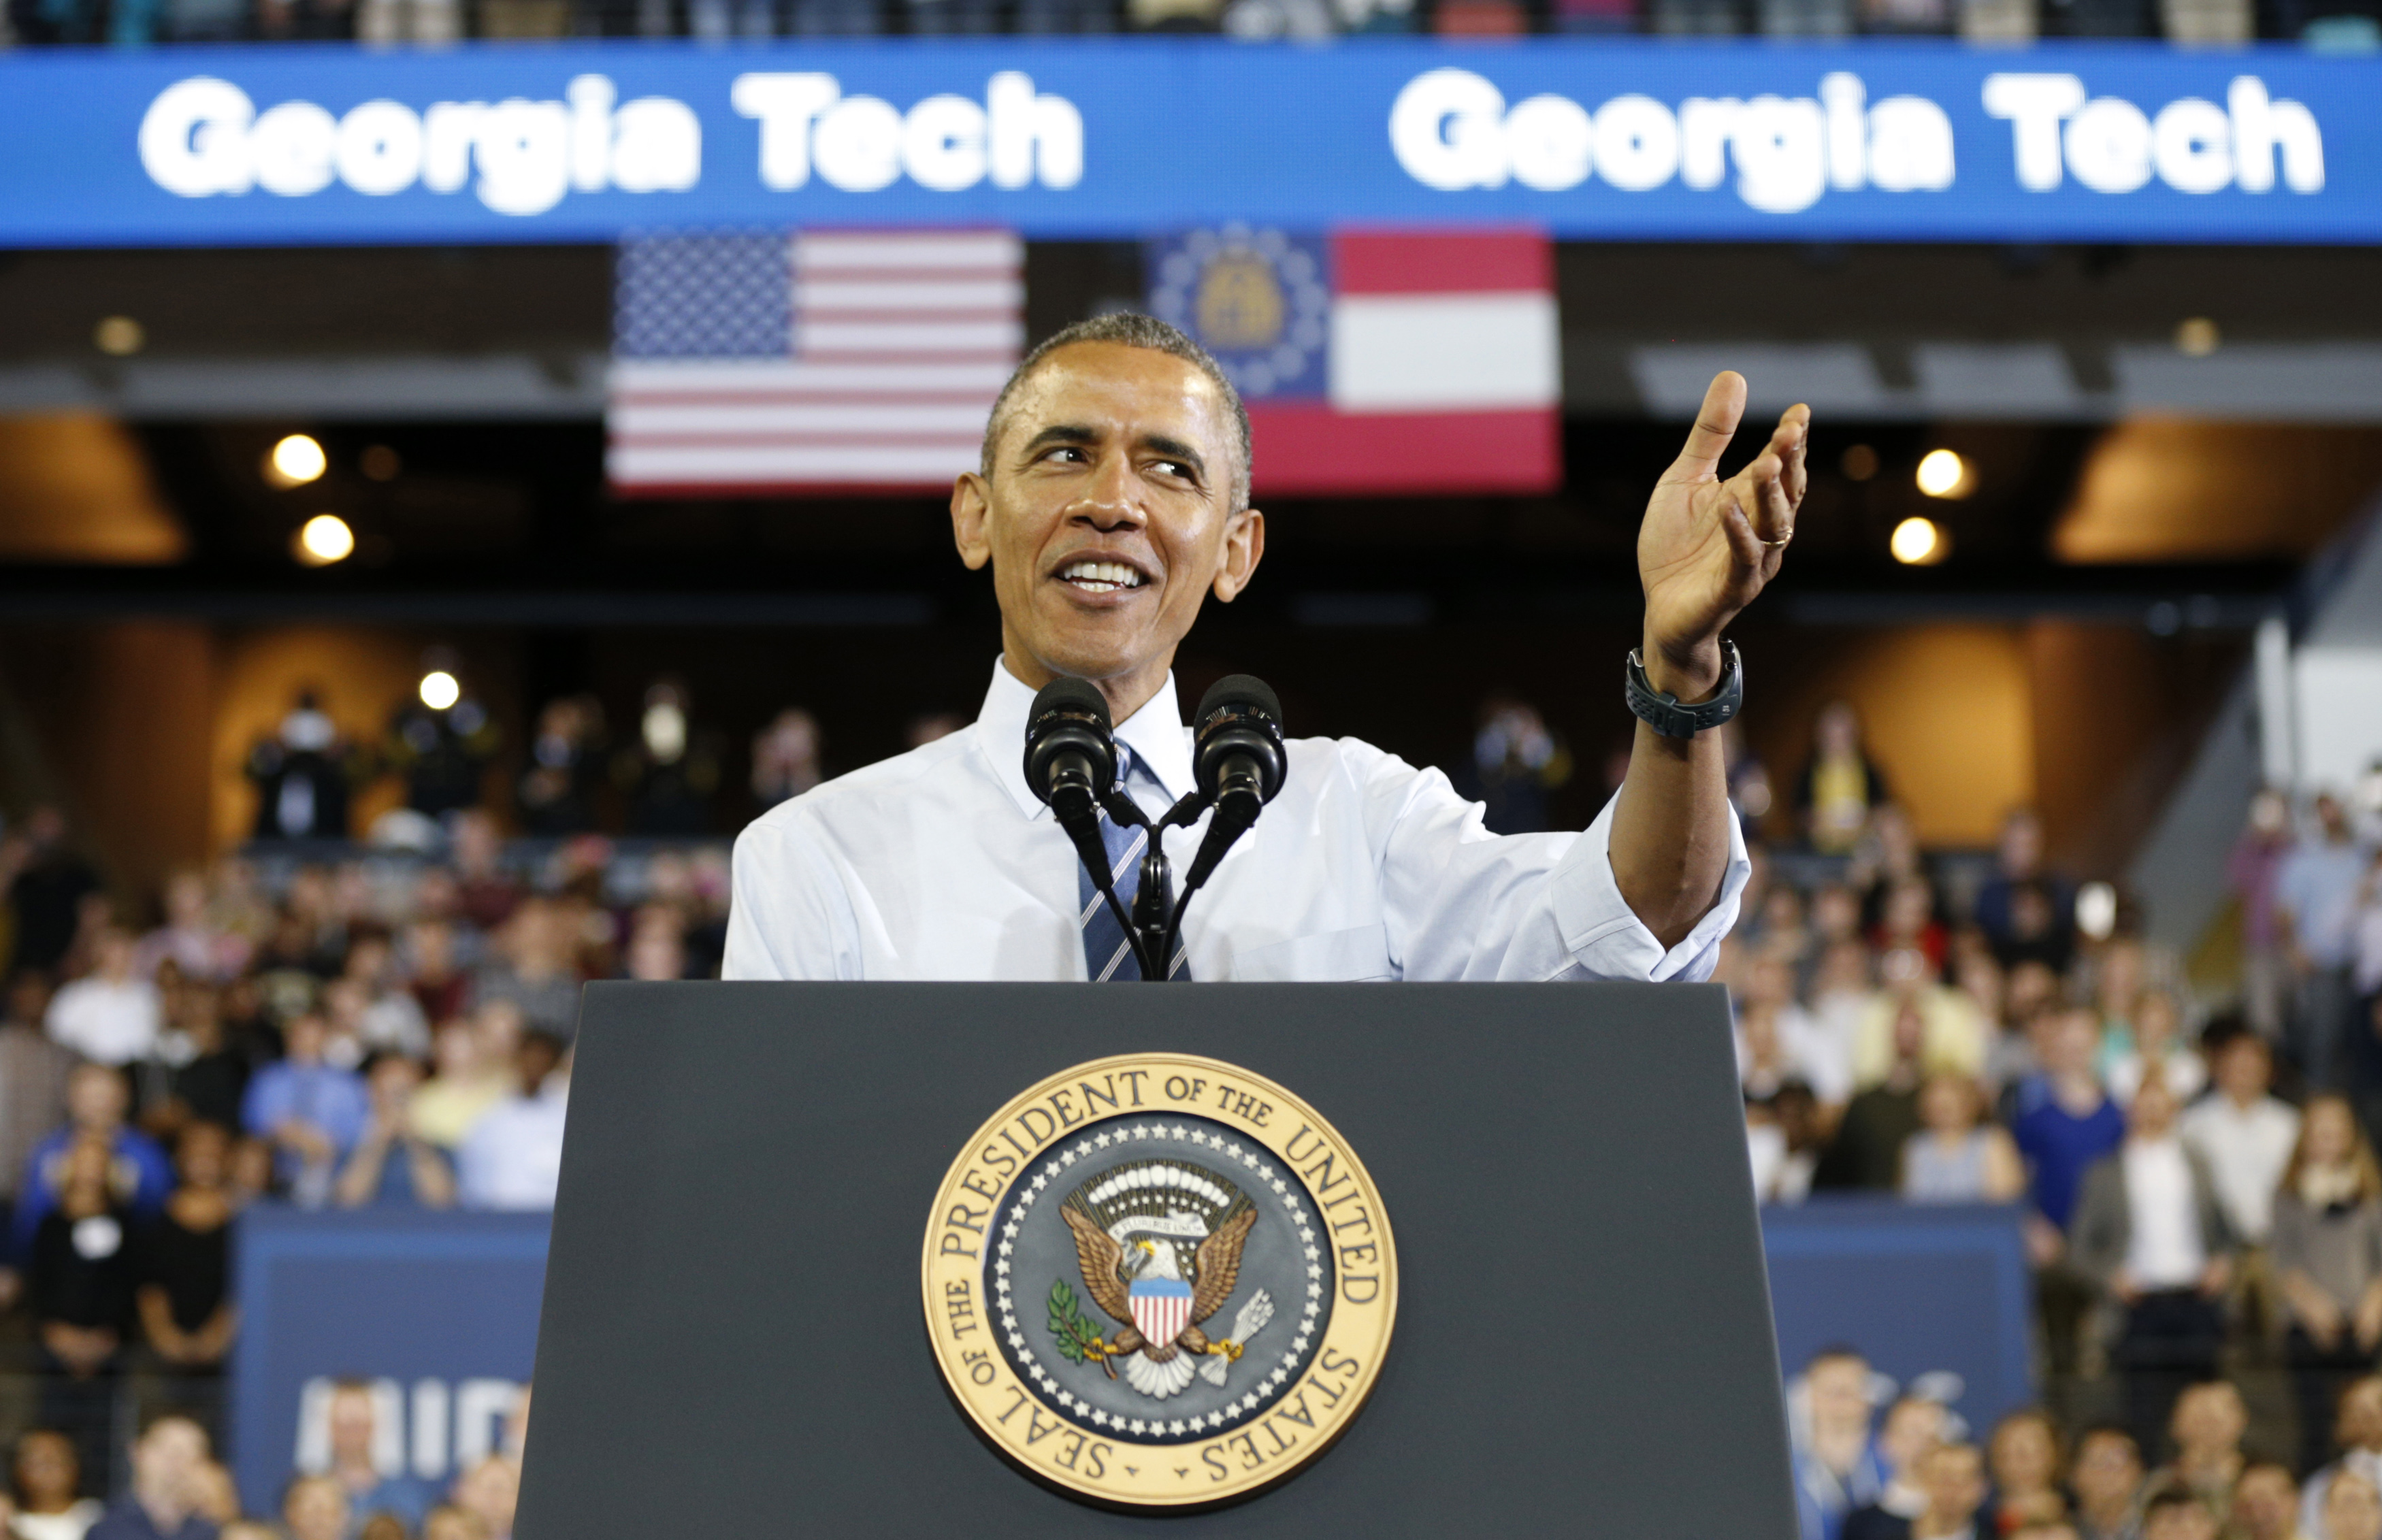 President Obama speaks to students during a visit to Georgia Tech on Tuesday. The president unveiled efforts to change student loan procedures. Photo by Kevin Lamarque/Reuters